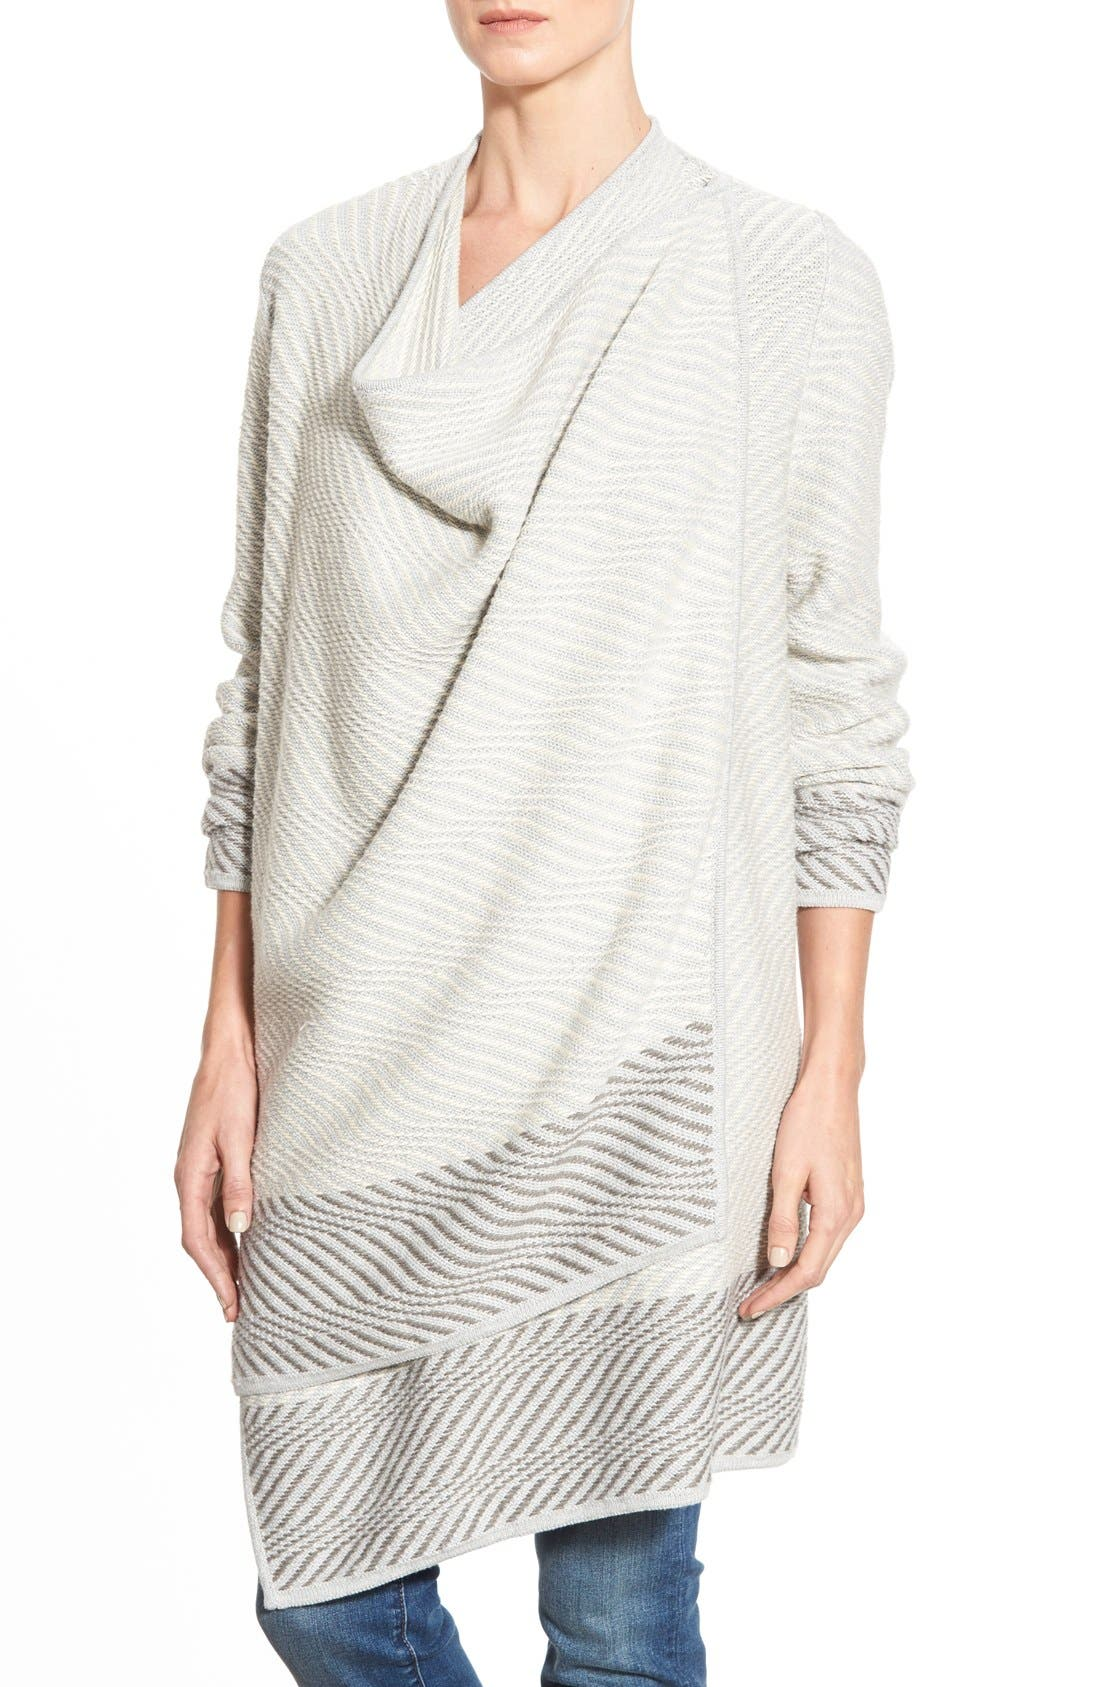 LUCKY BRAND, Waterfall Cardigan, Alternate thumbnail 2, color, 100